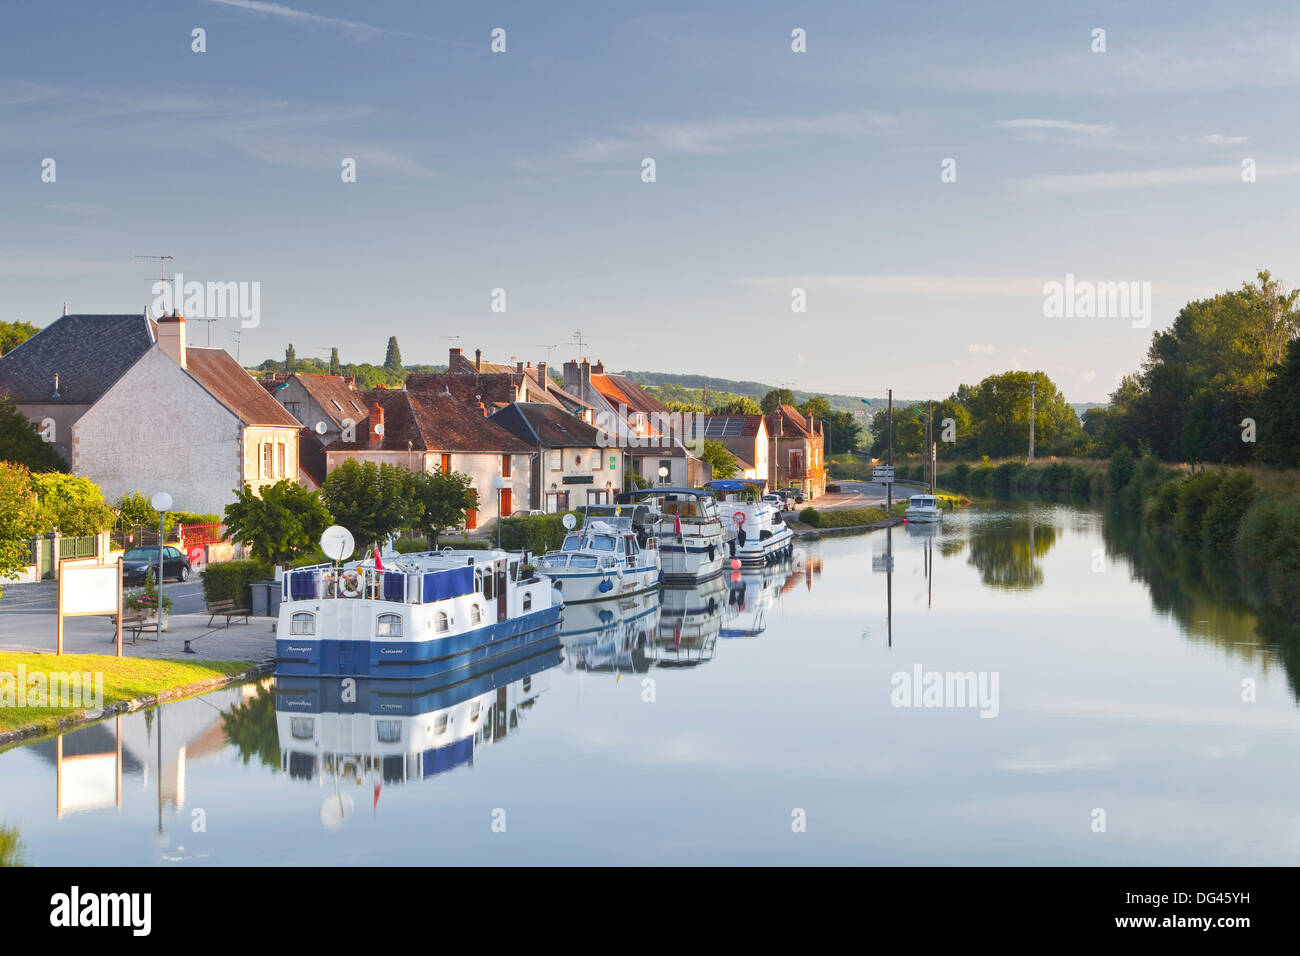 The canal Lateral a La Loire and the village of Menetreol sous Sancerre, Cher, Centre, France, Europe - Stock Image